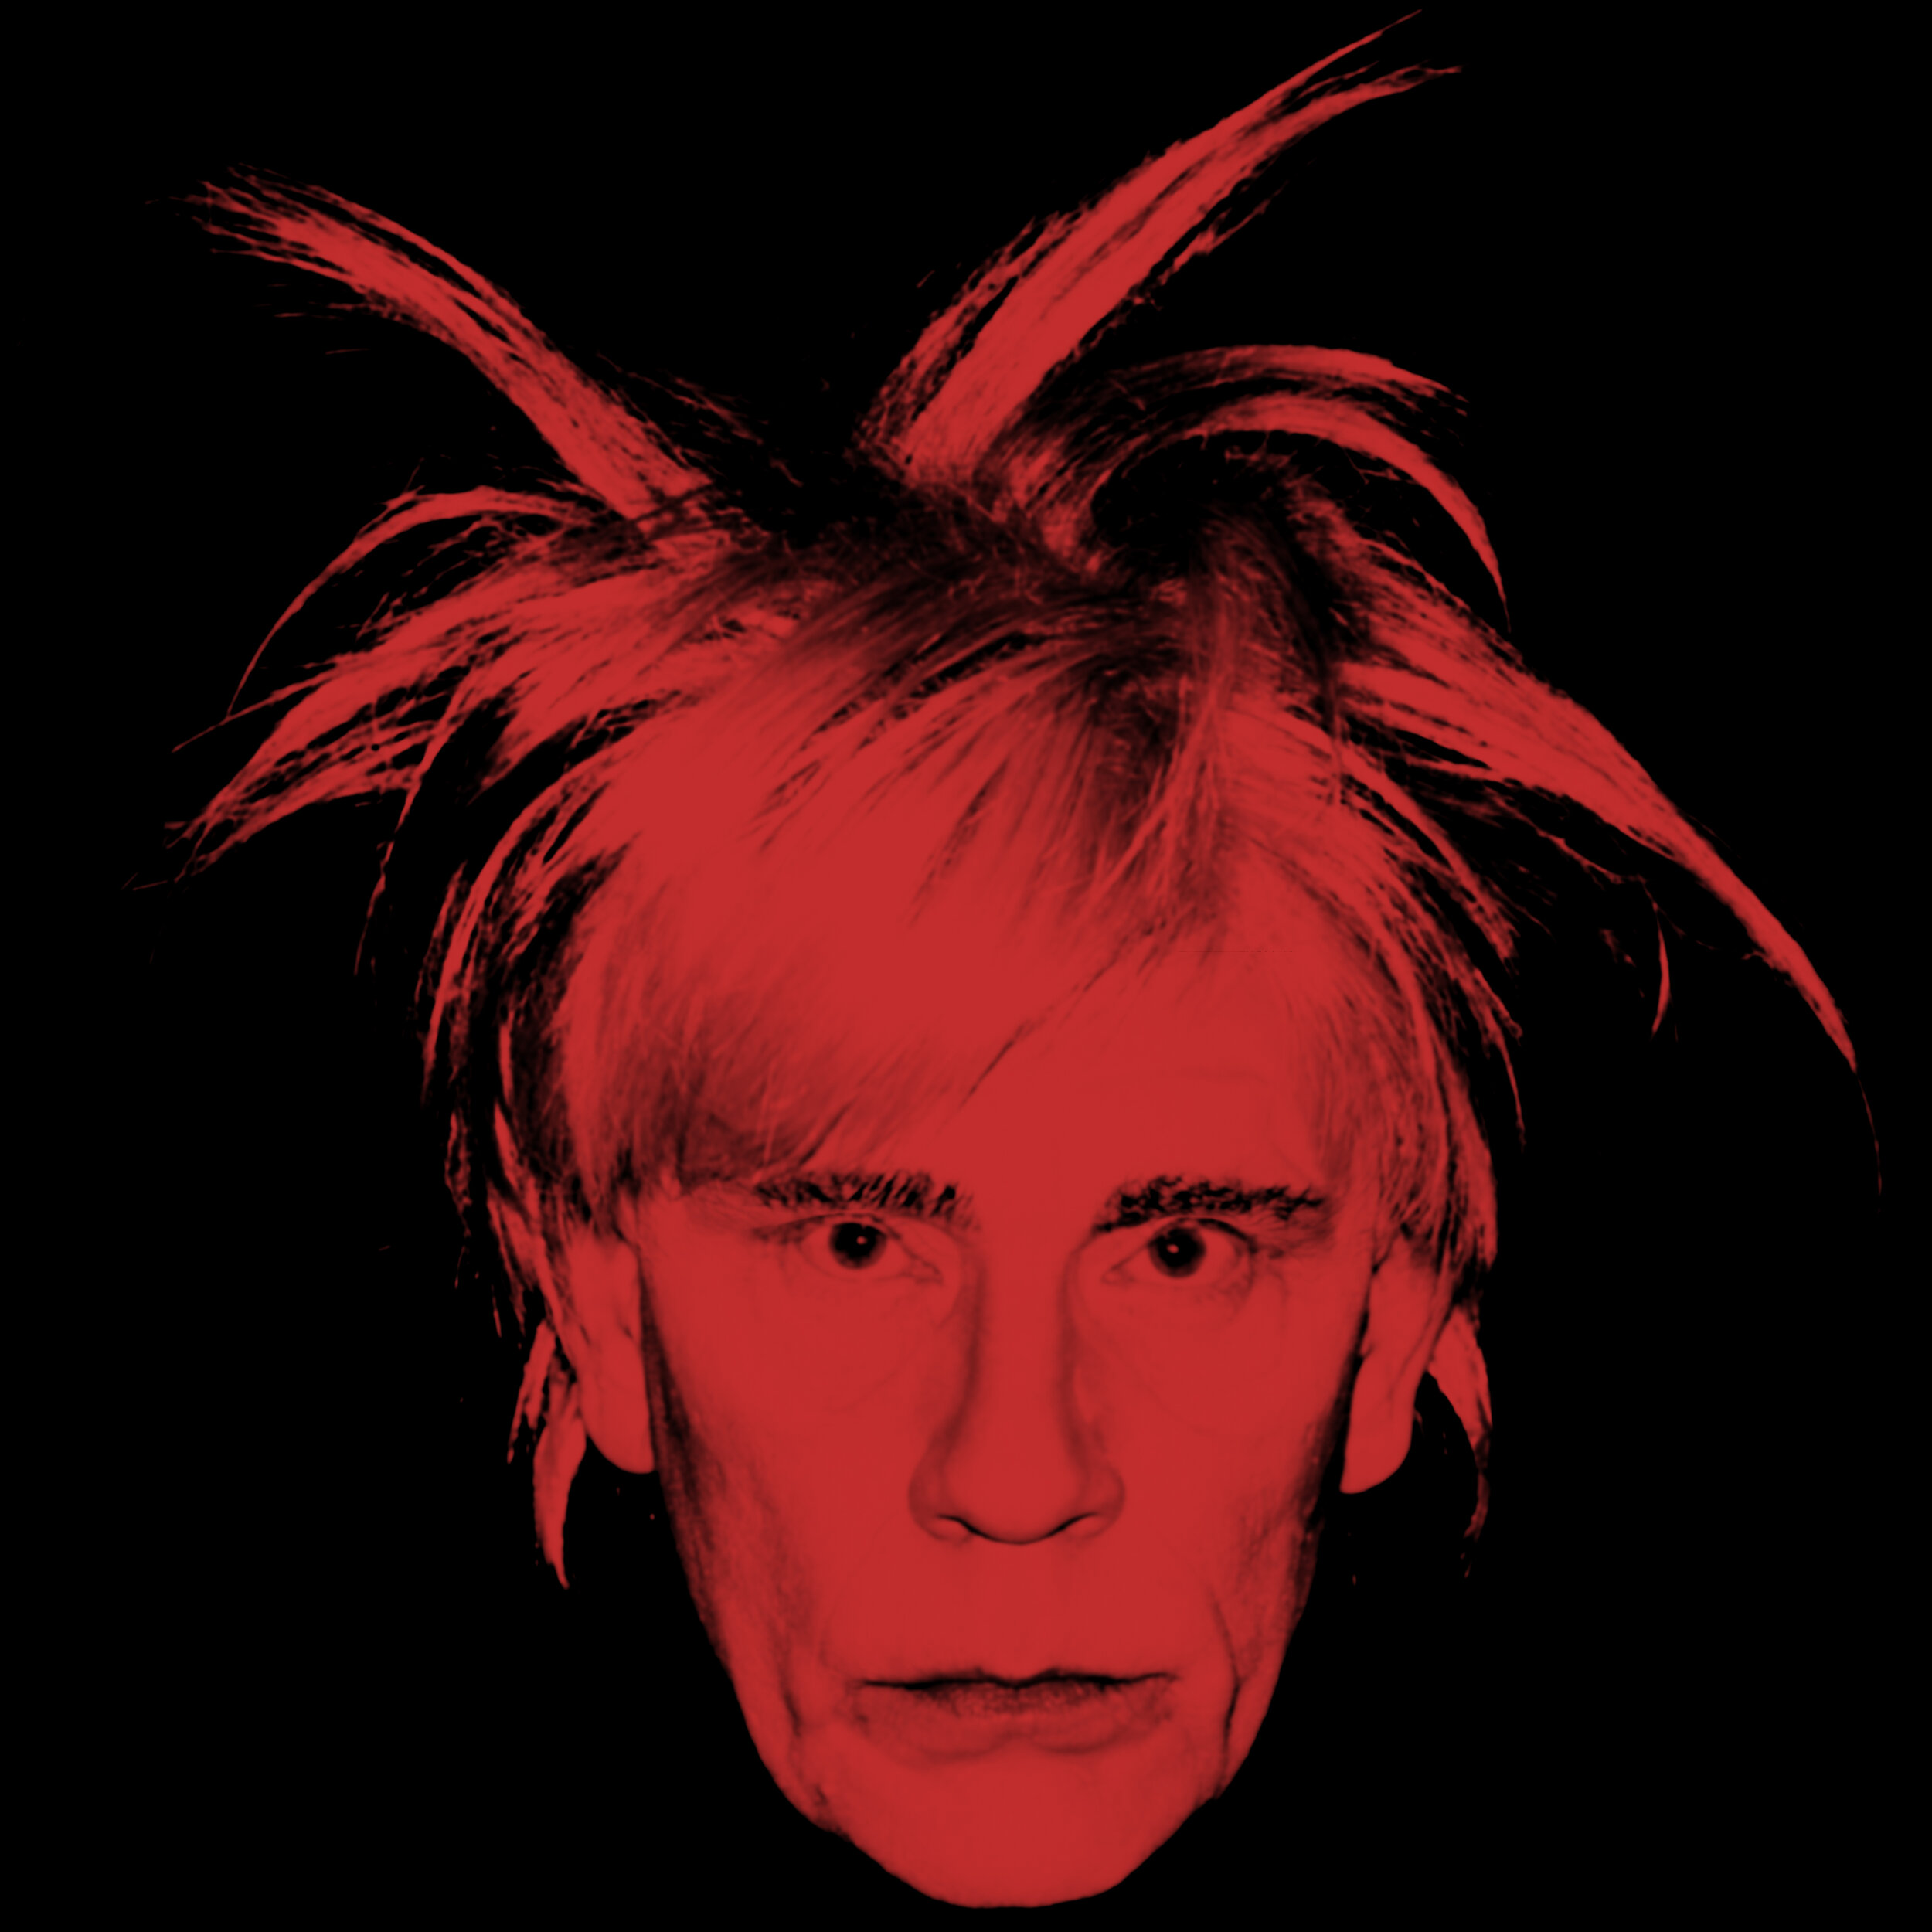 Andy Warhol _ Self Portrait (Fright Wig) (1986), 2014.jpg